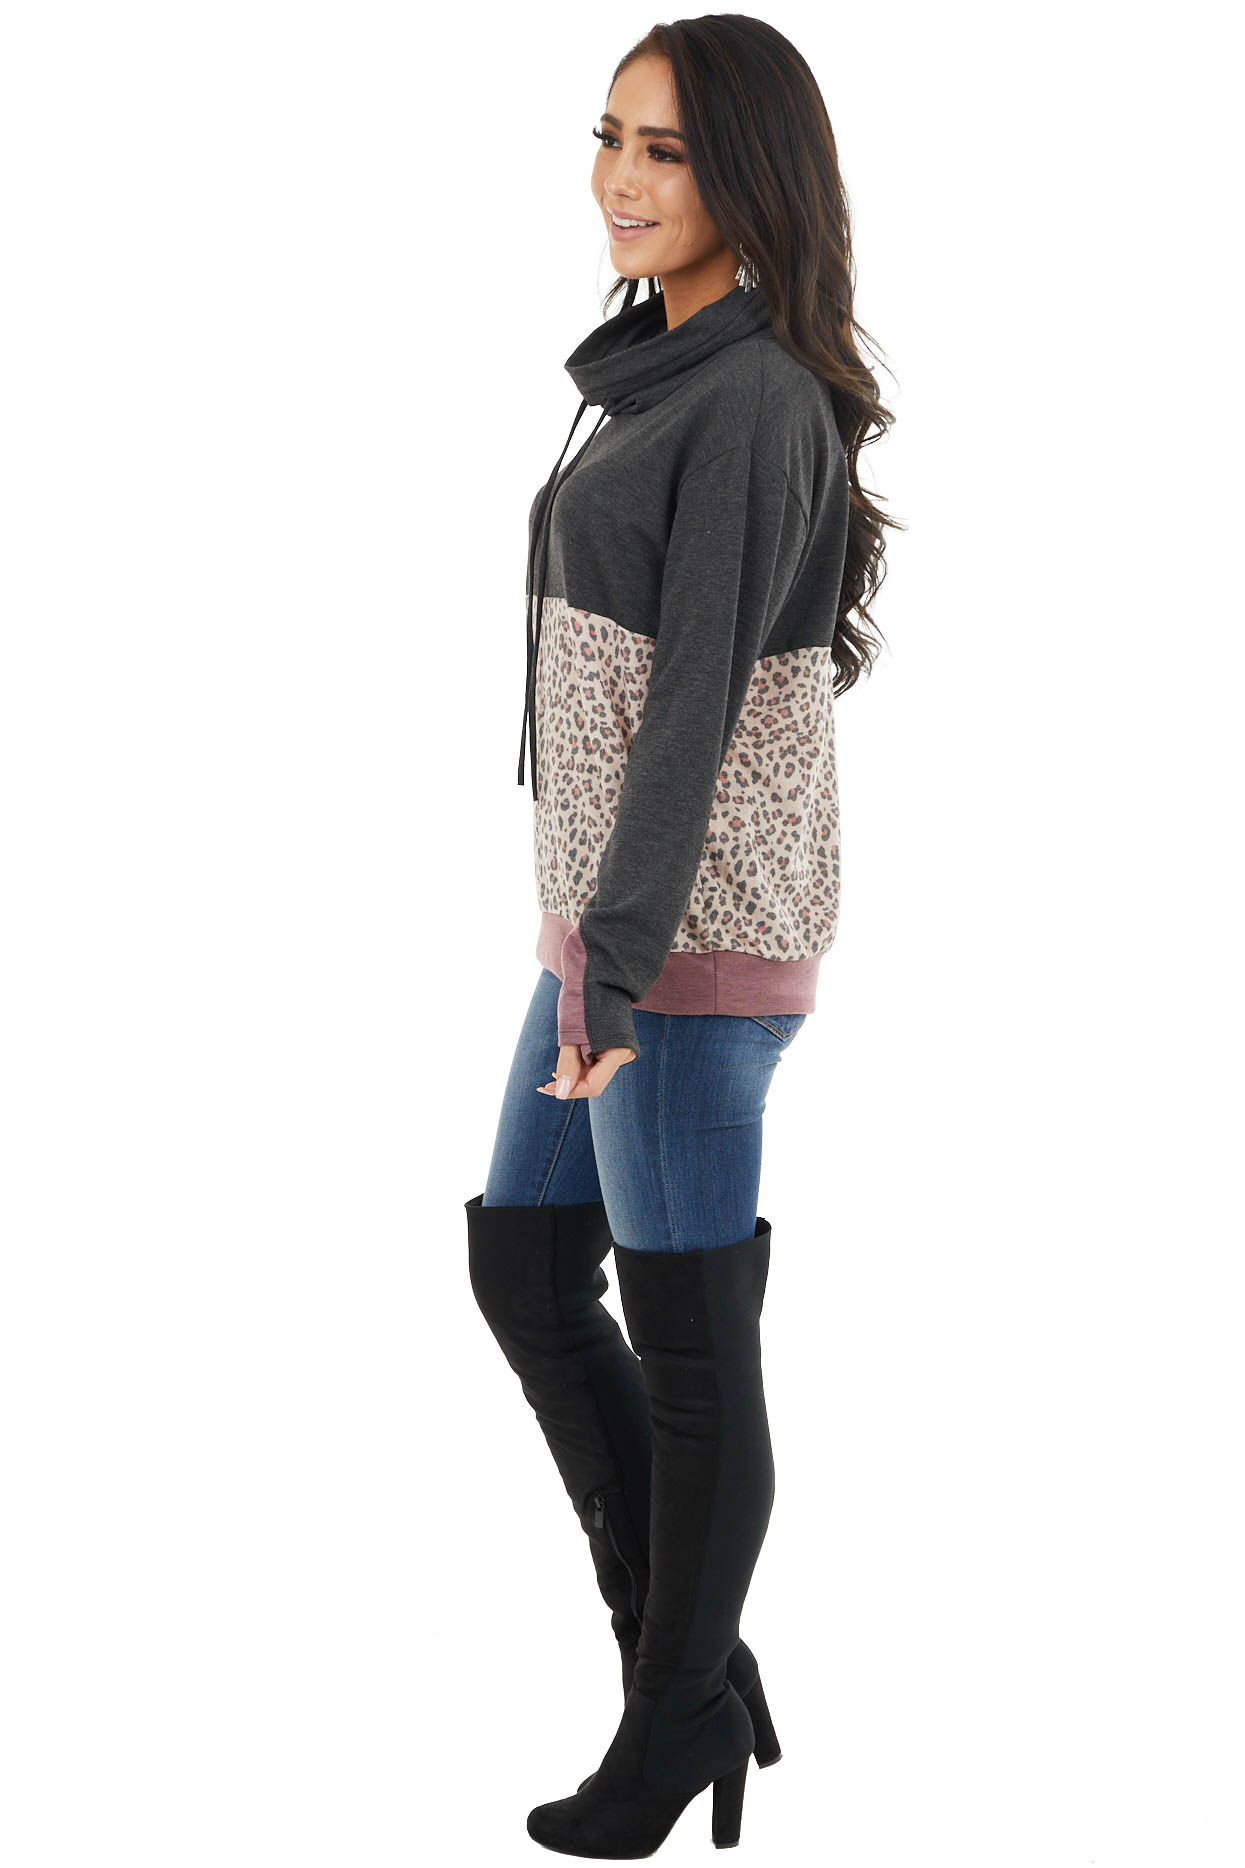 Charcoal Knit Cowl Neck Sweatshirt with Beige Leopard Print